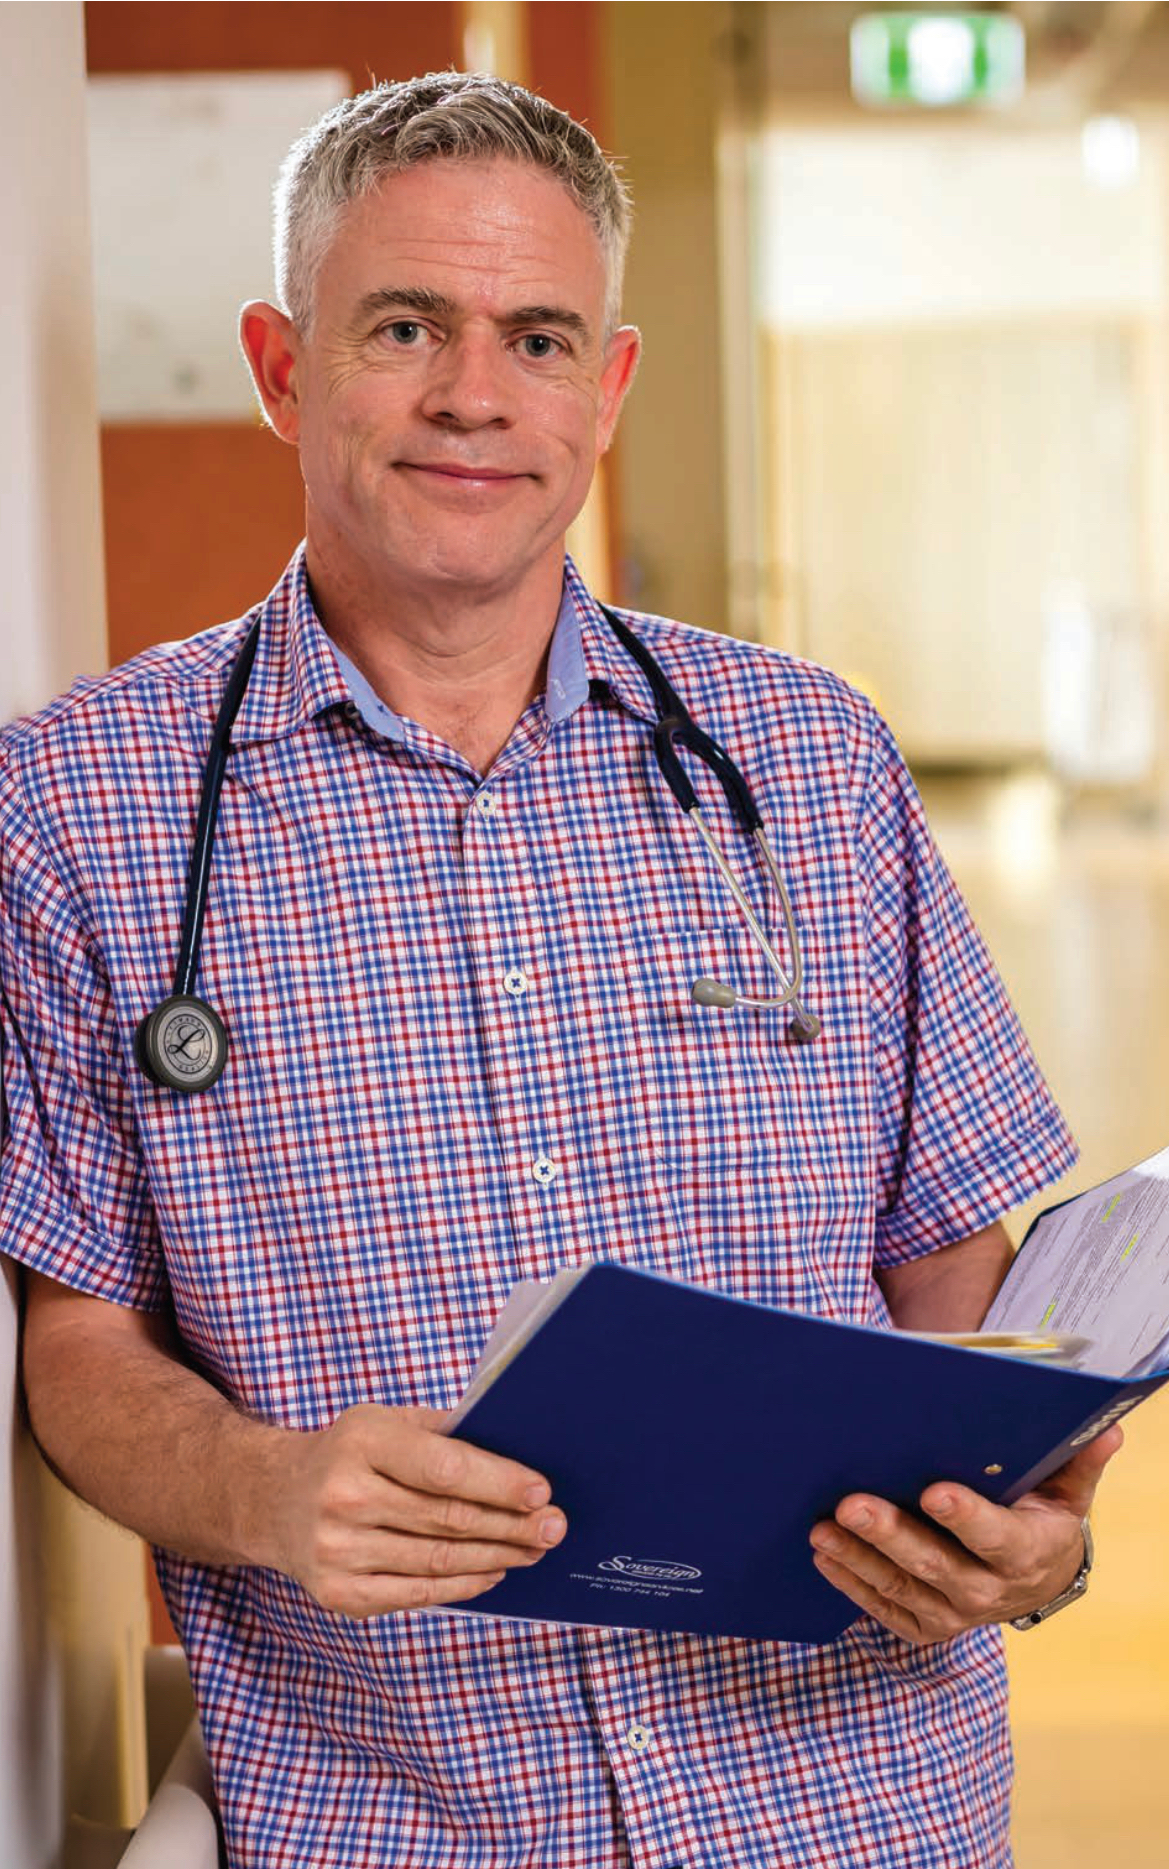 Dr. Edward Strivens, Clinical Director and Regional Geriatrician, Cairns and Hinterland Hospital and Health Service